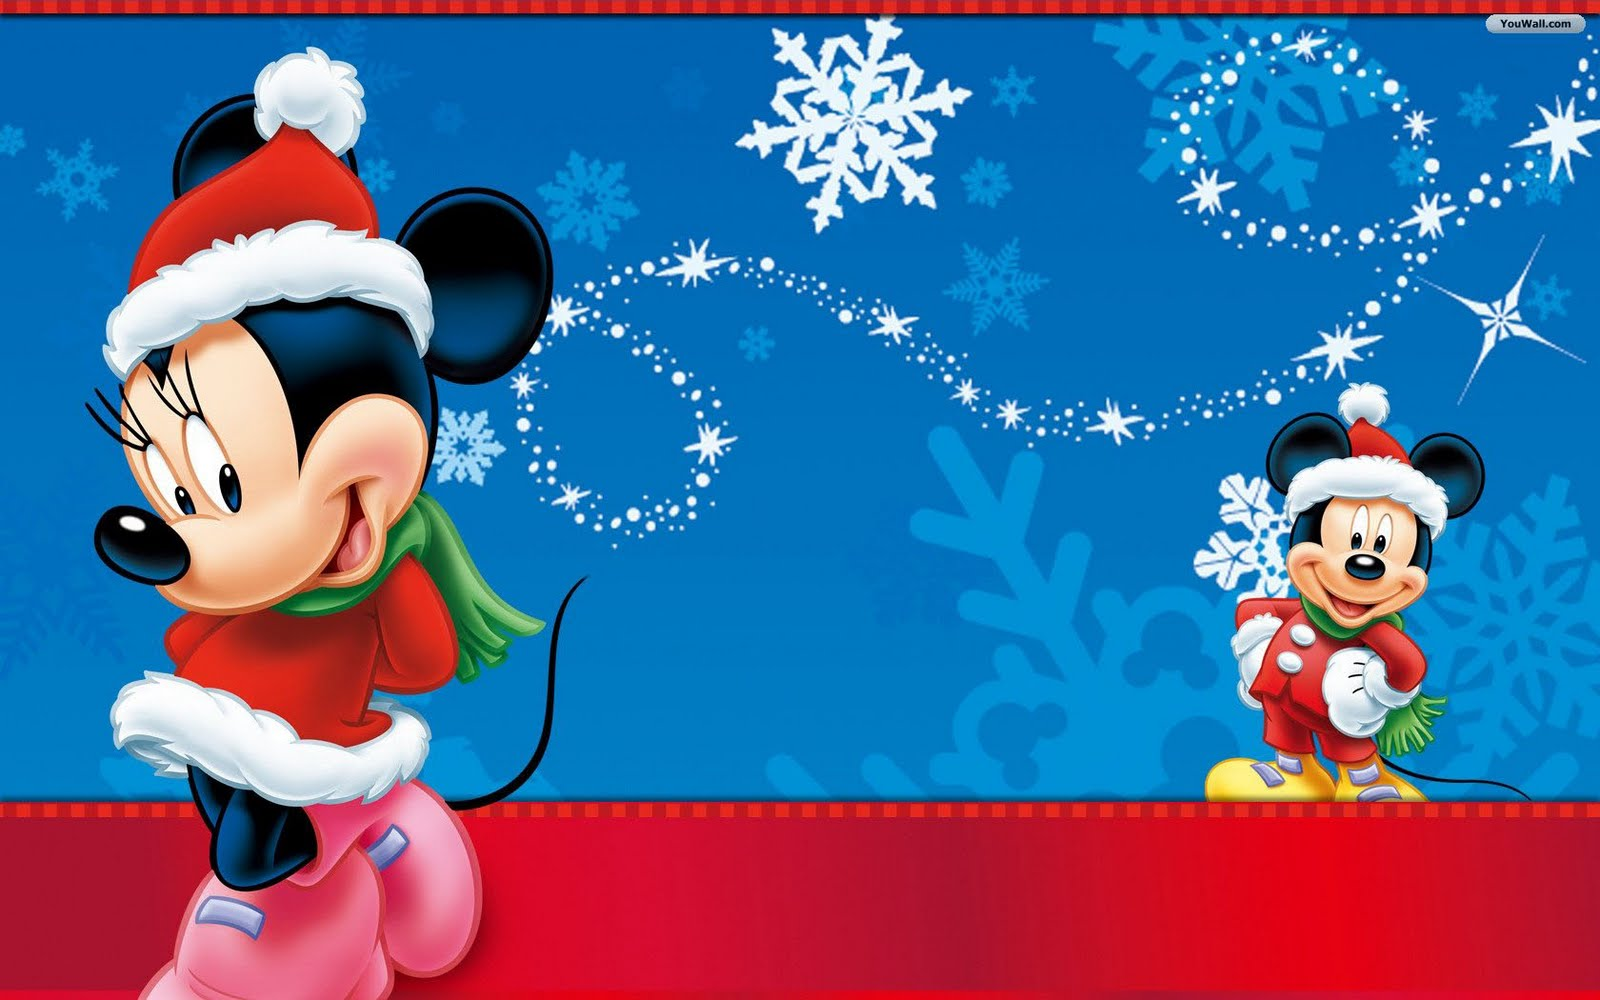 Wallpaper Mansion Disney Christmas Wallpapers 1600x1000